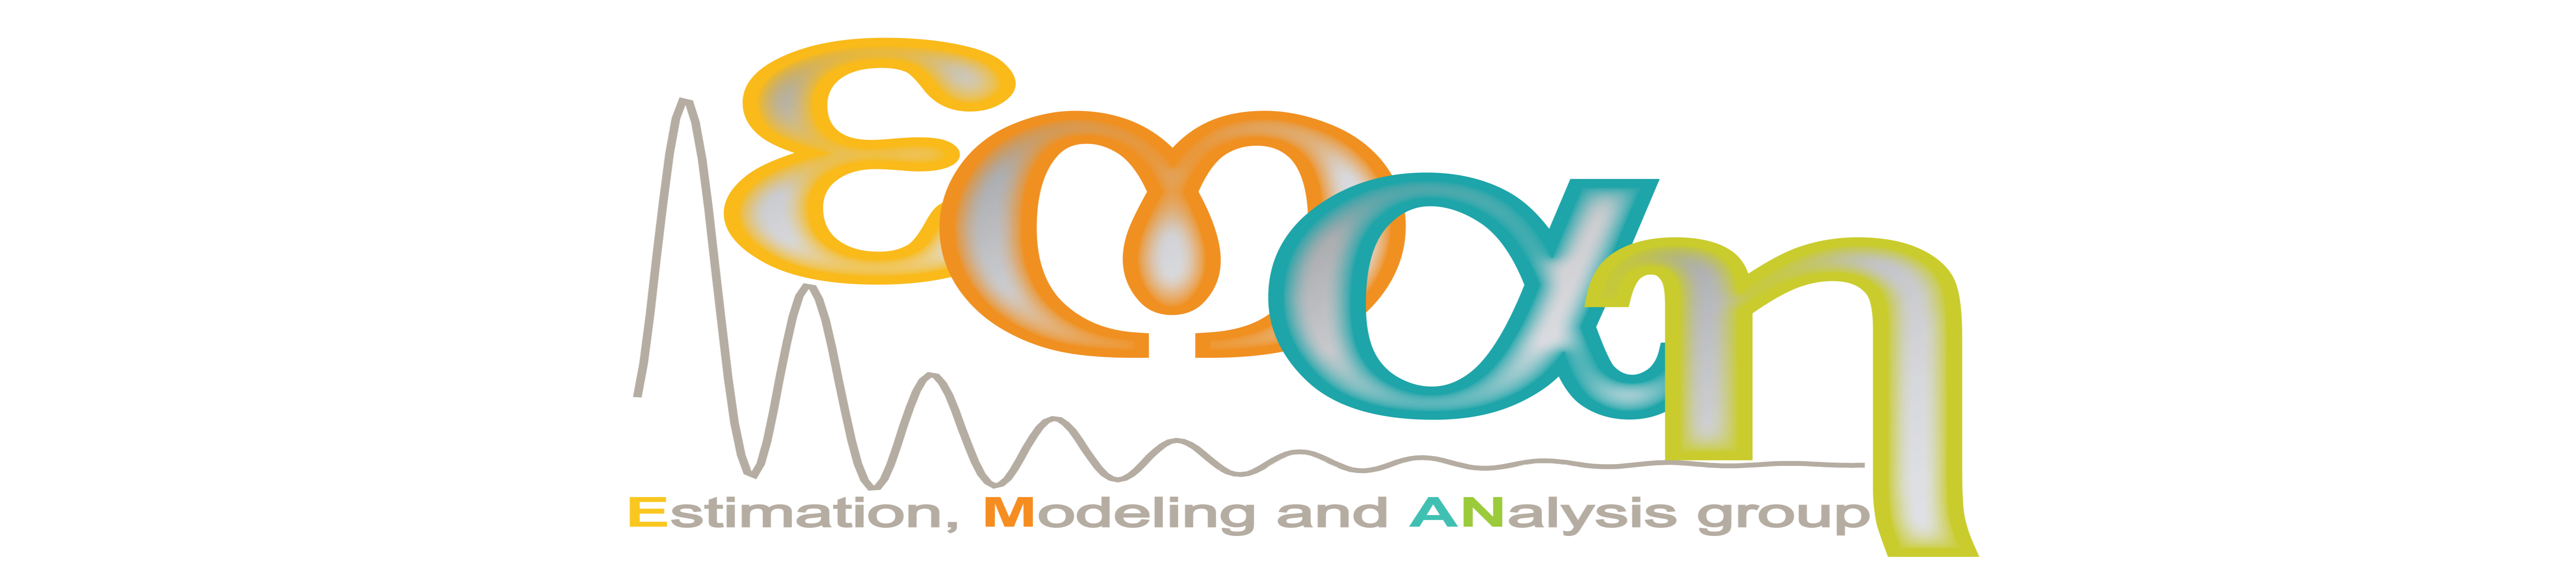 Estimation, Modeling and ANalysis group